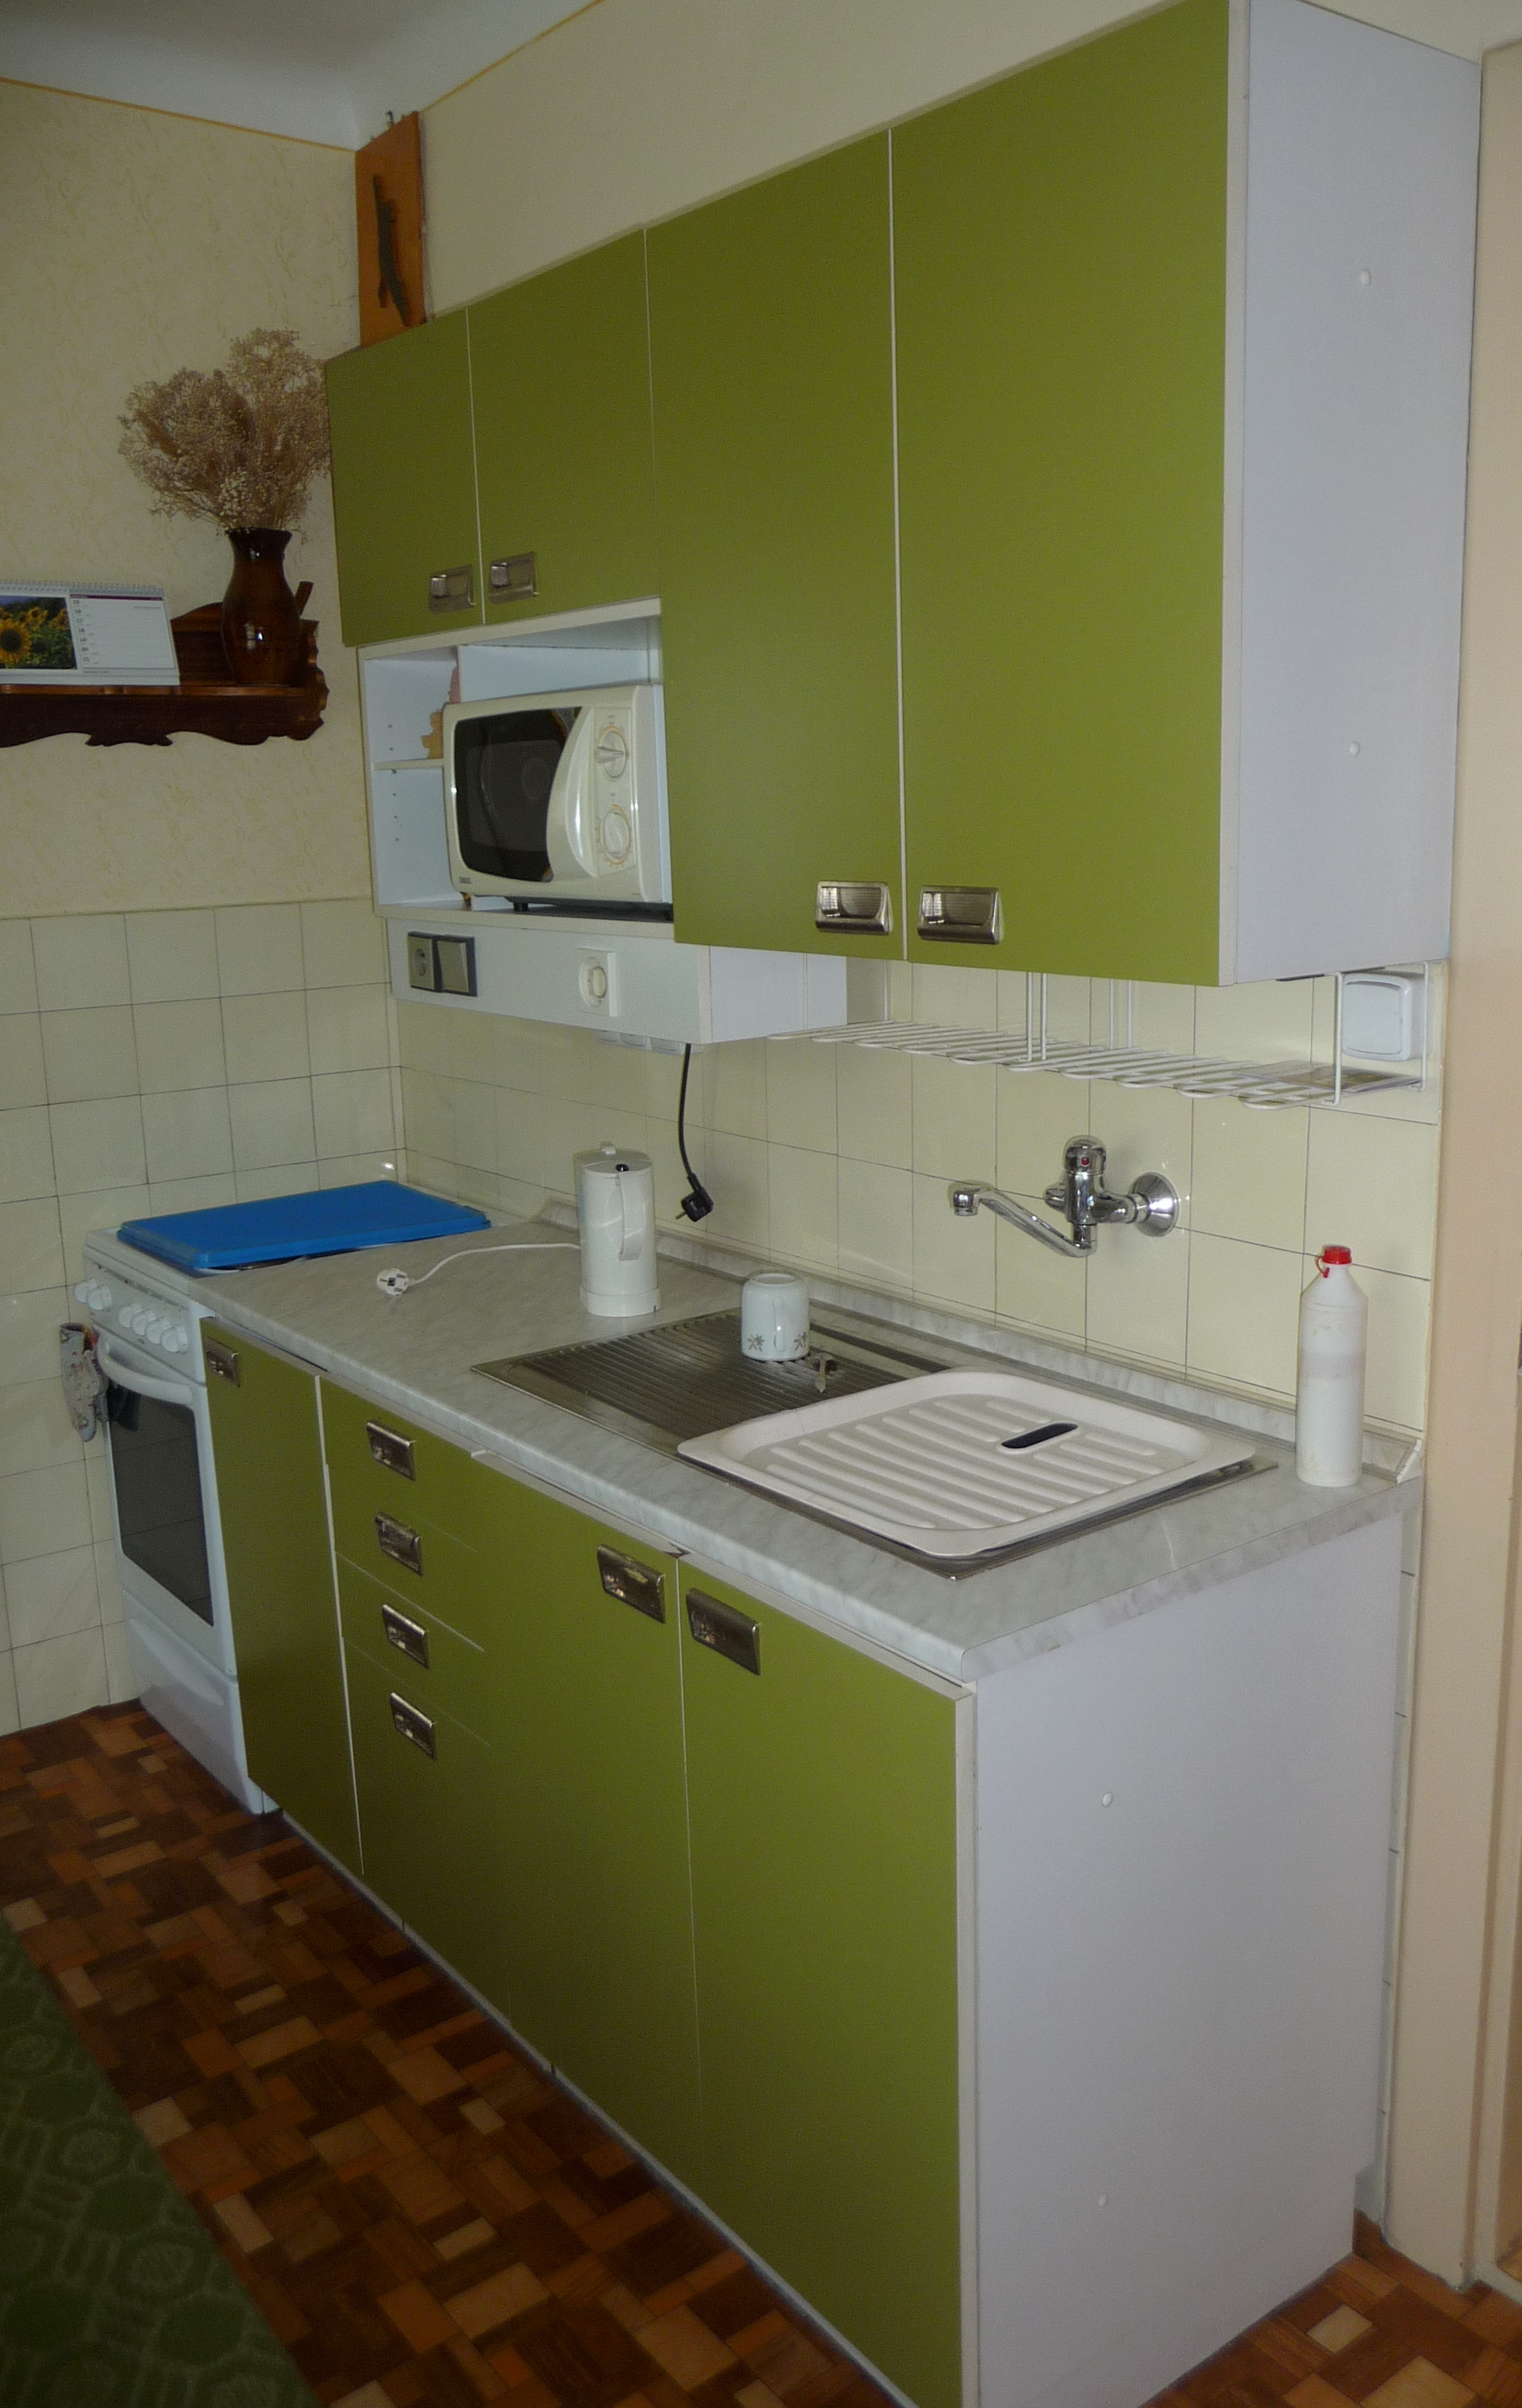 Kitchen design picture gallery in malaysia - File Green Kitchen Cabinet 2 Jpg Wikimedia Commons